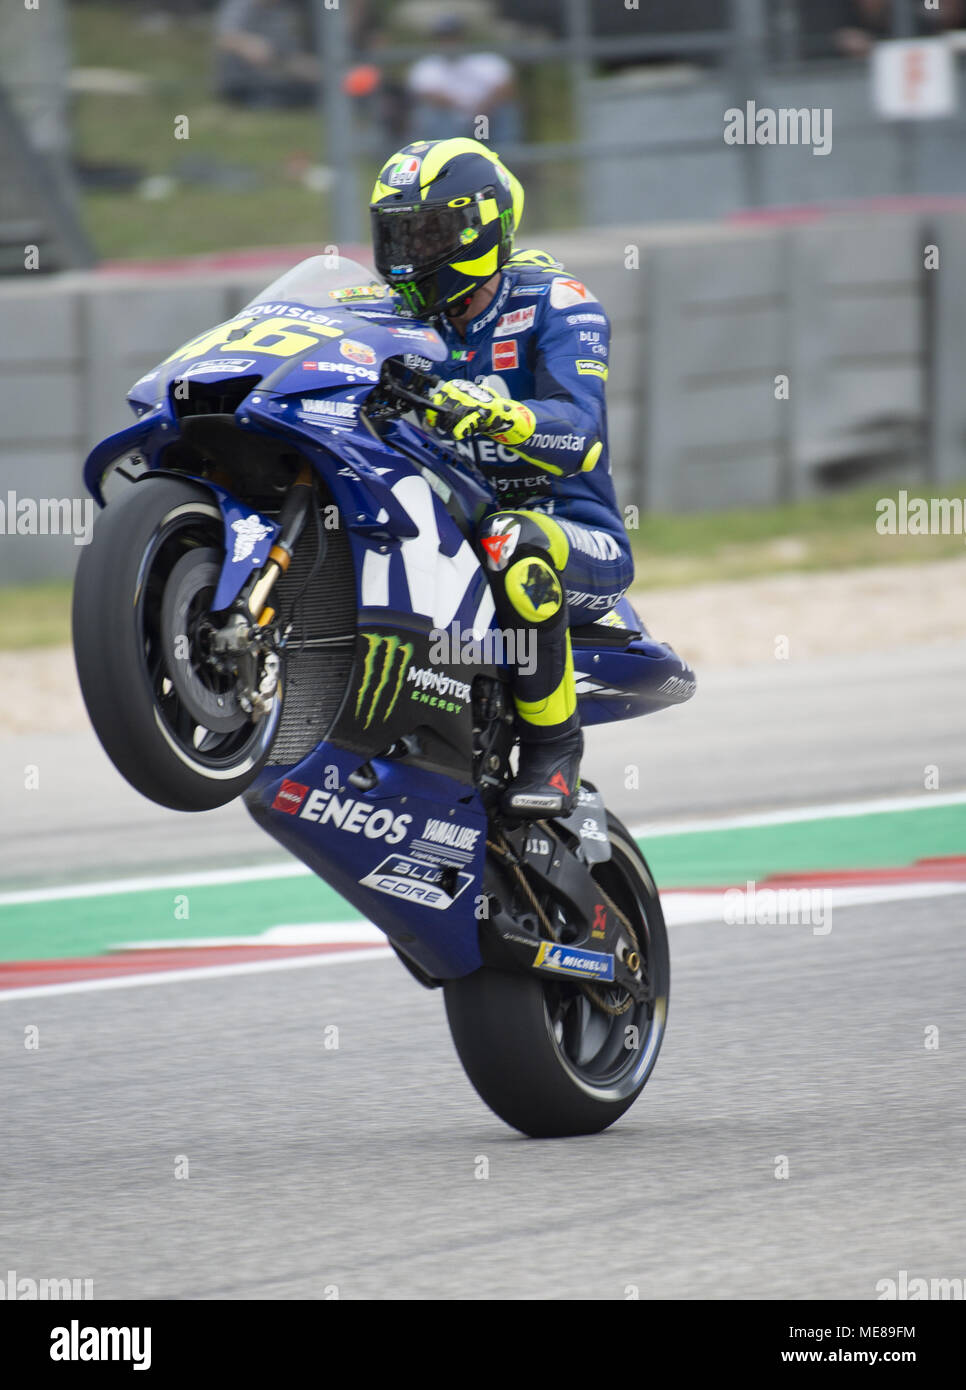 Austin Texas U S A 21st Apr 2018 46 Valentino Rossi Of